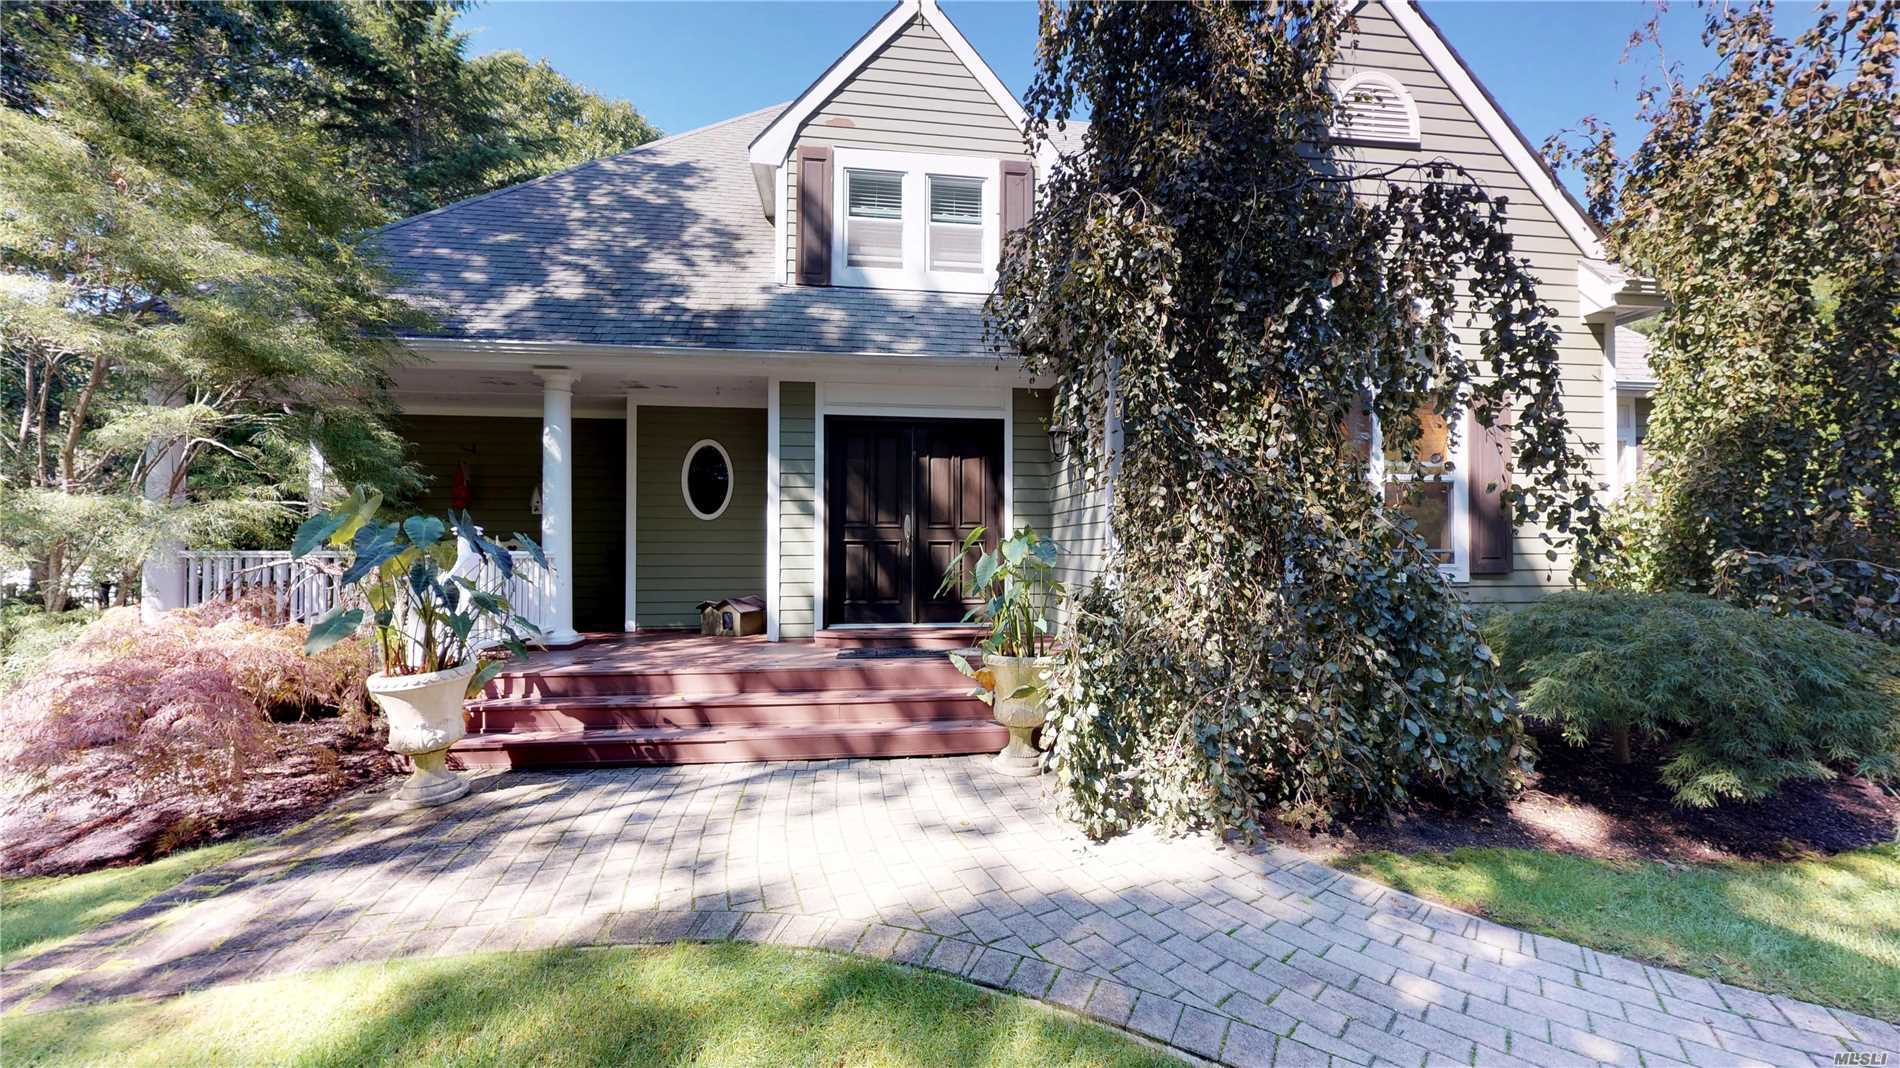 Photo of home for sale at 101 Lakeside Ln, Westhampton NY